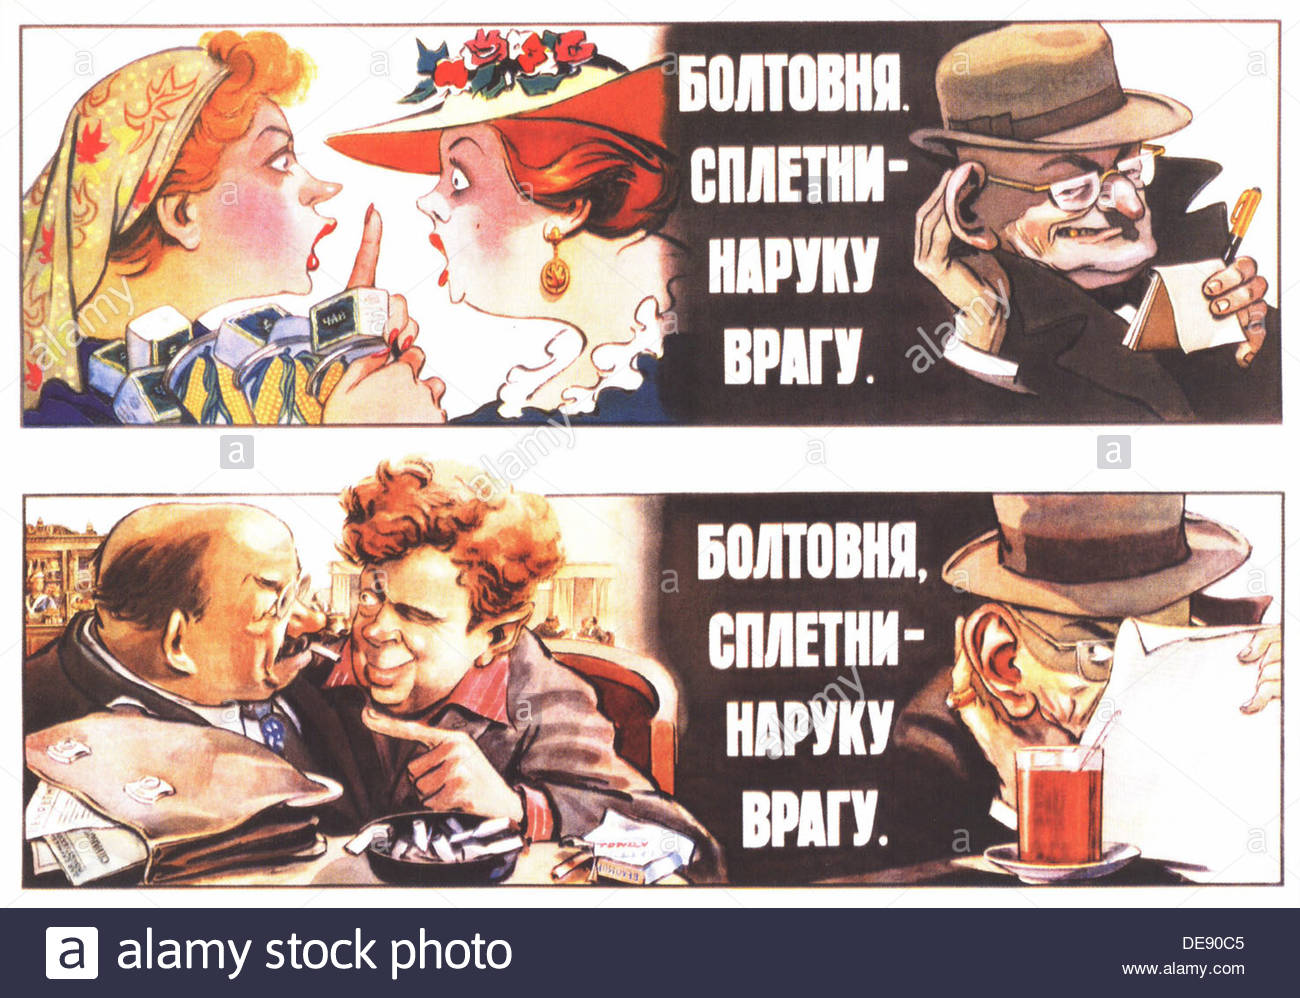 Talks, rumours are to the foe's good (Poster), 1954. Artist: Briskin, Veniamin Markovich (1906-1982) - Stock Image